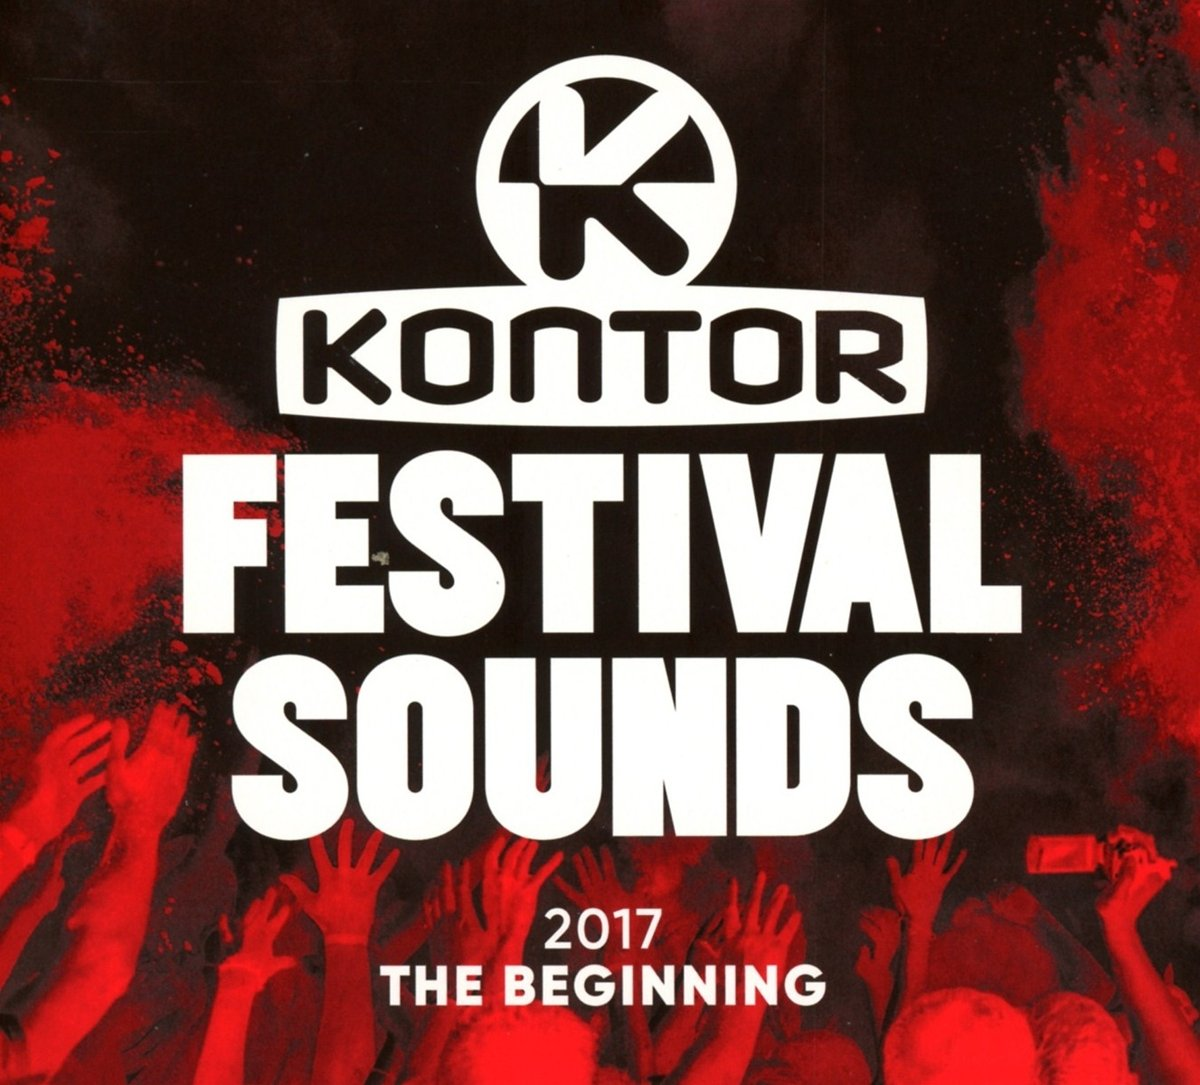 VA - Kontor Festival Sounds 2017 The Beginning - 3CD - FLAC - 2017 - VOLDiES Download